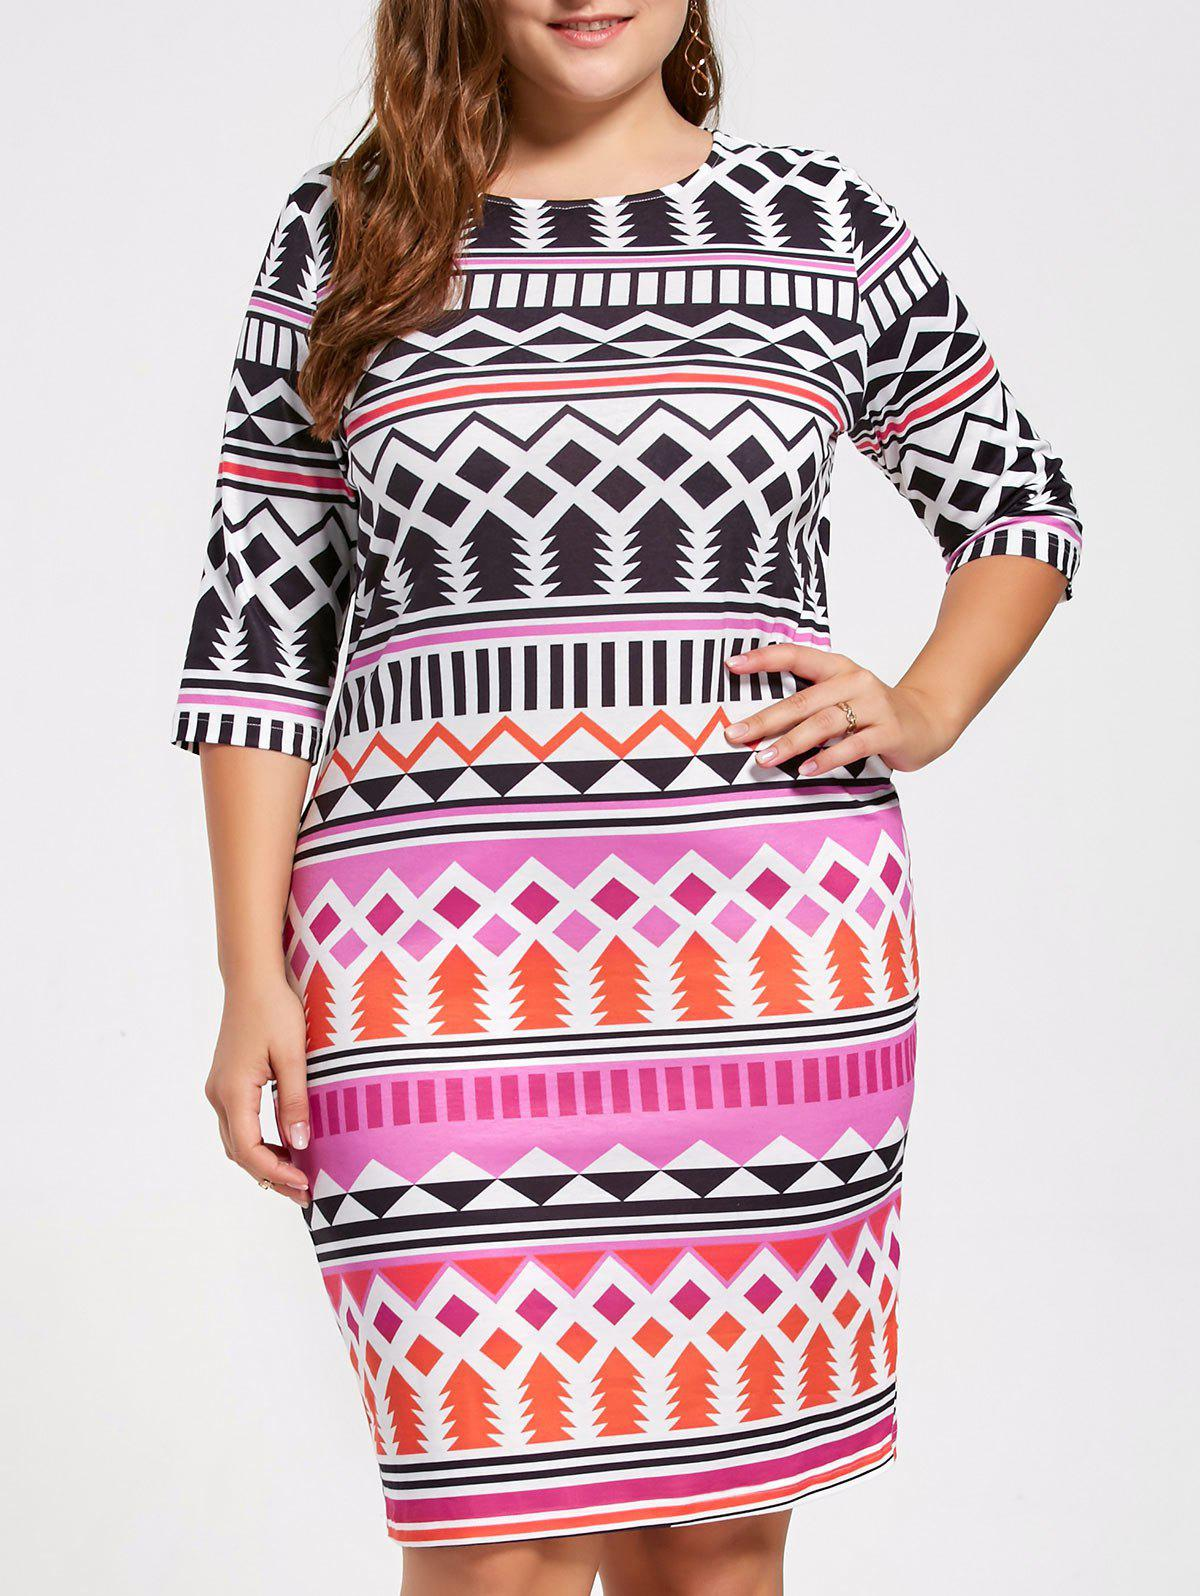 Plus Size Crew Neck Tribal Pattern DressWOMEN<br><br>Size: 3XL; Color: COLORMIX; Style: Brief; Material: Polyester,Spandex; Silhouette: Sheath; Dresses Length: Knee-Length; Neckline: Round Collar; Sleeve Length: Half Sleeves; Pattern Type: Geometric,Tribal Print; With Belt: No; Season: Fall,Spring,Summer; Weight: 0.3000kg; Package Contents: 1 x Dress;